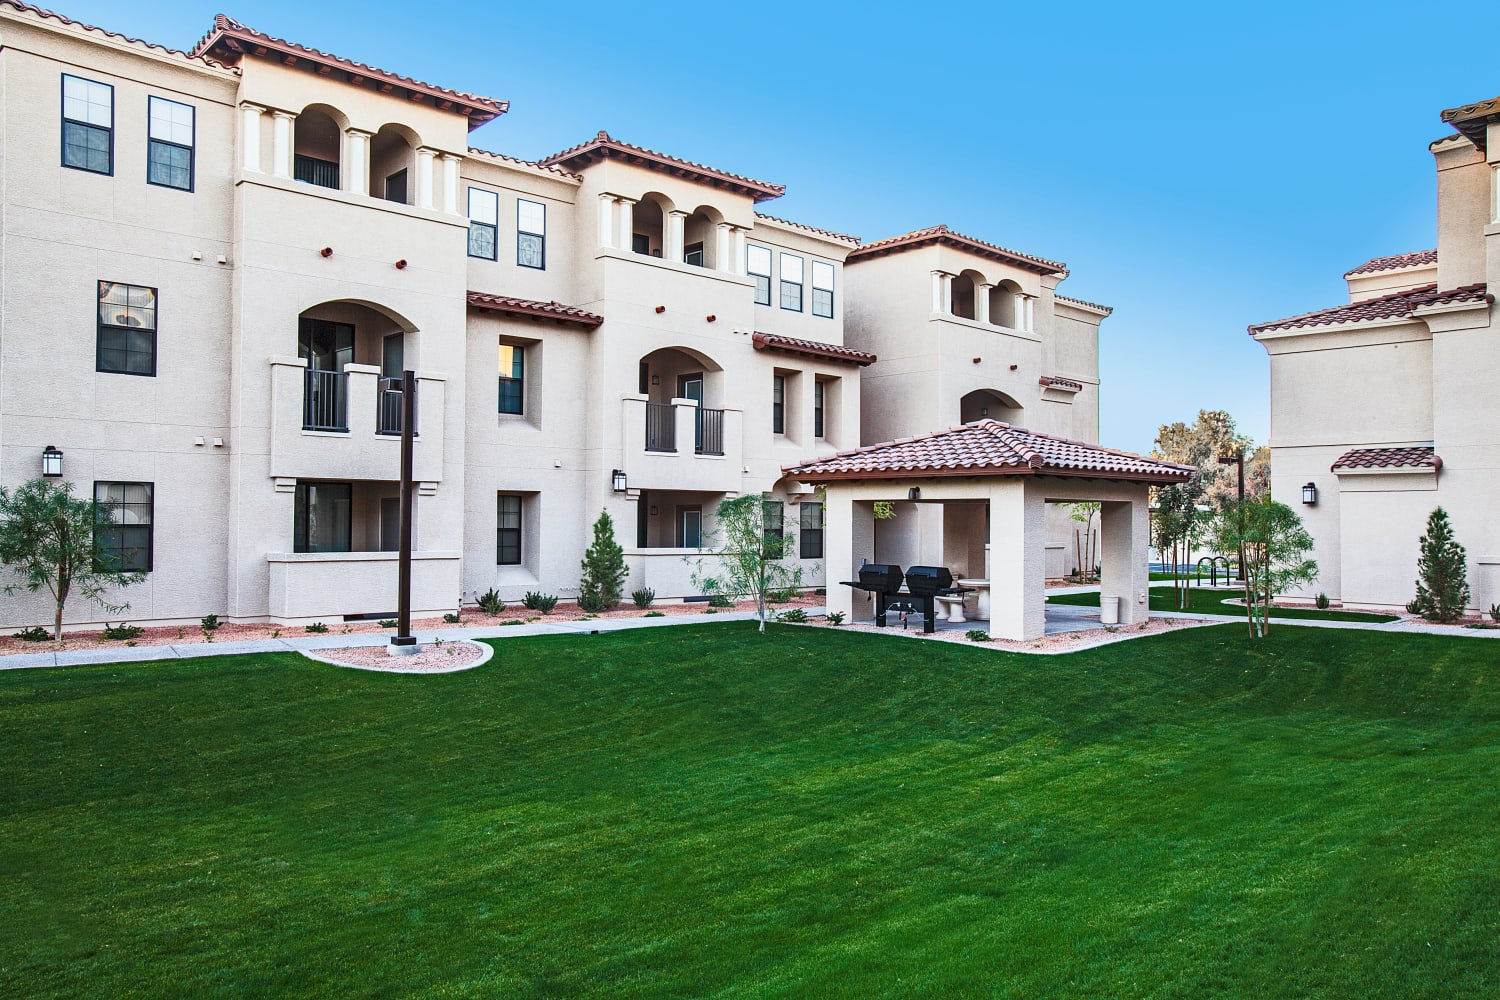 Enjoy lush, green grass outside of San Marquis in Tempe, Arizona